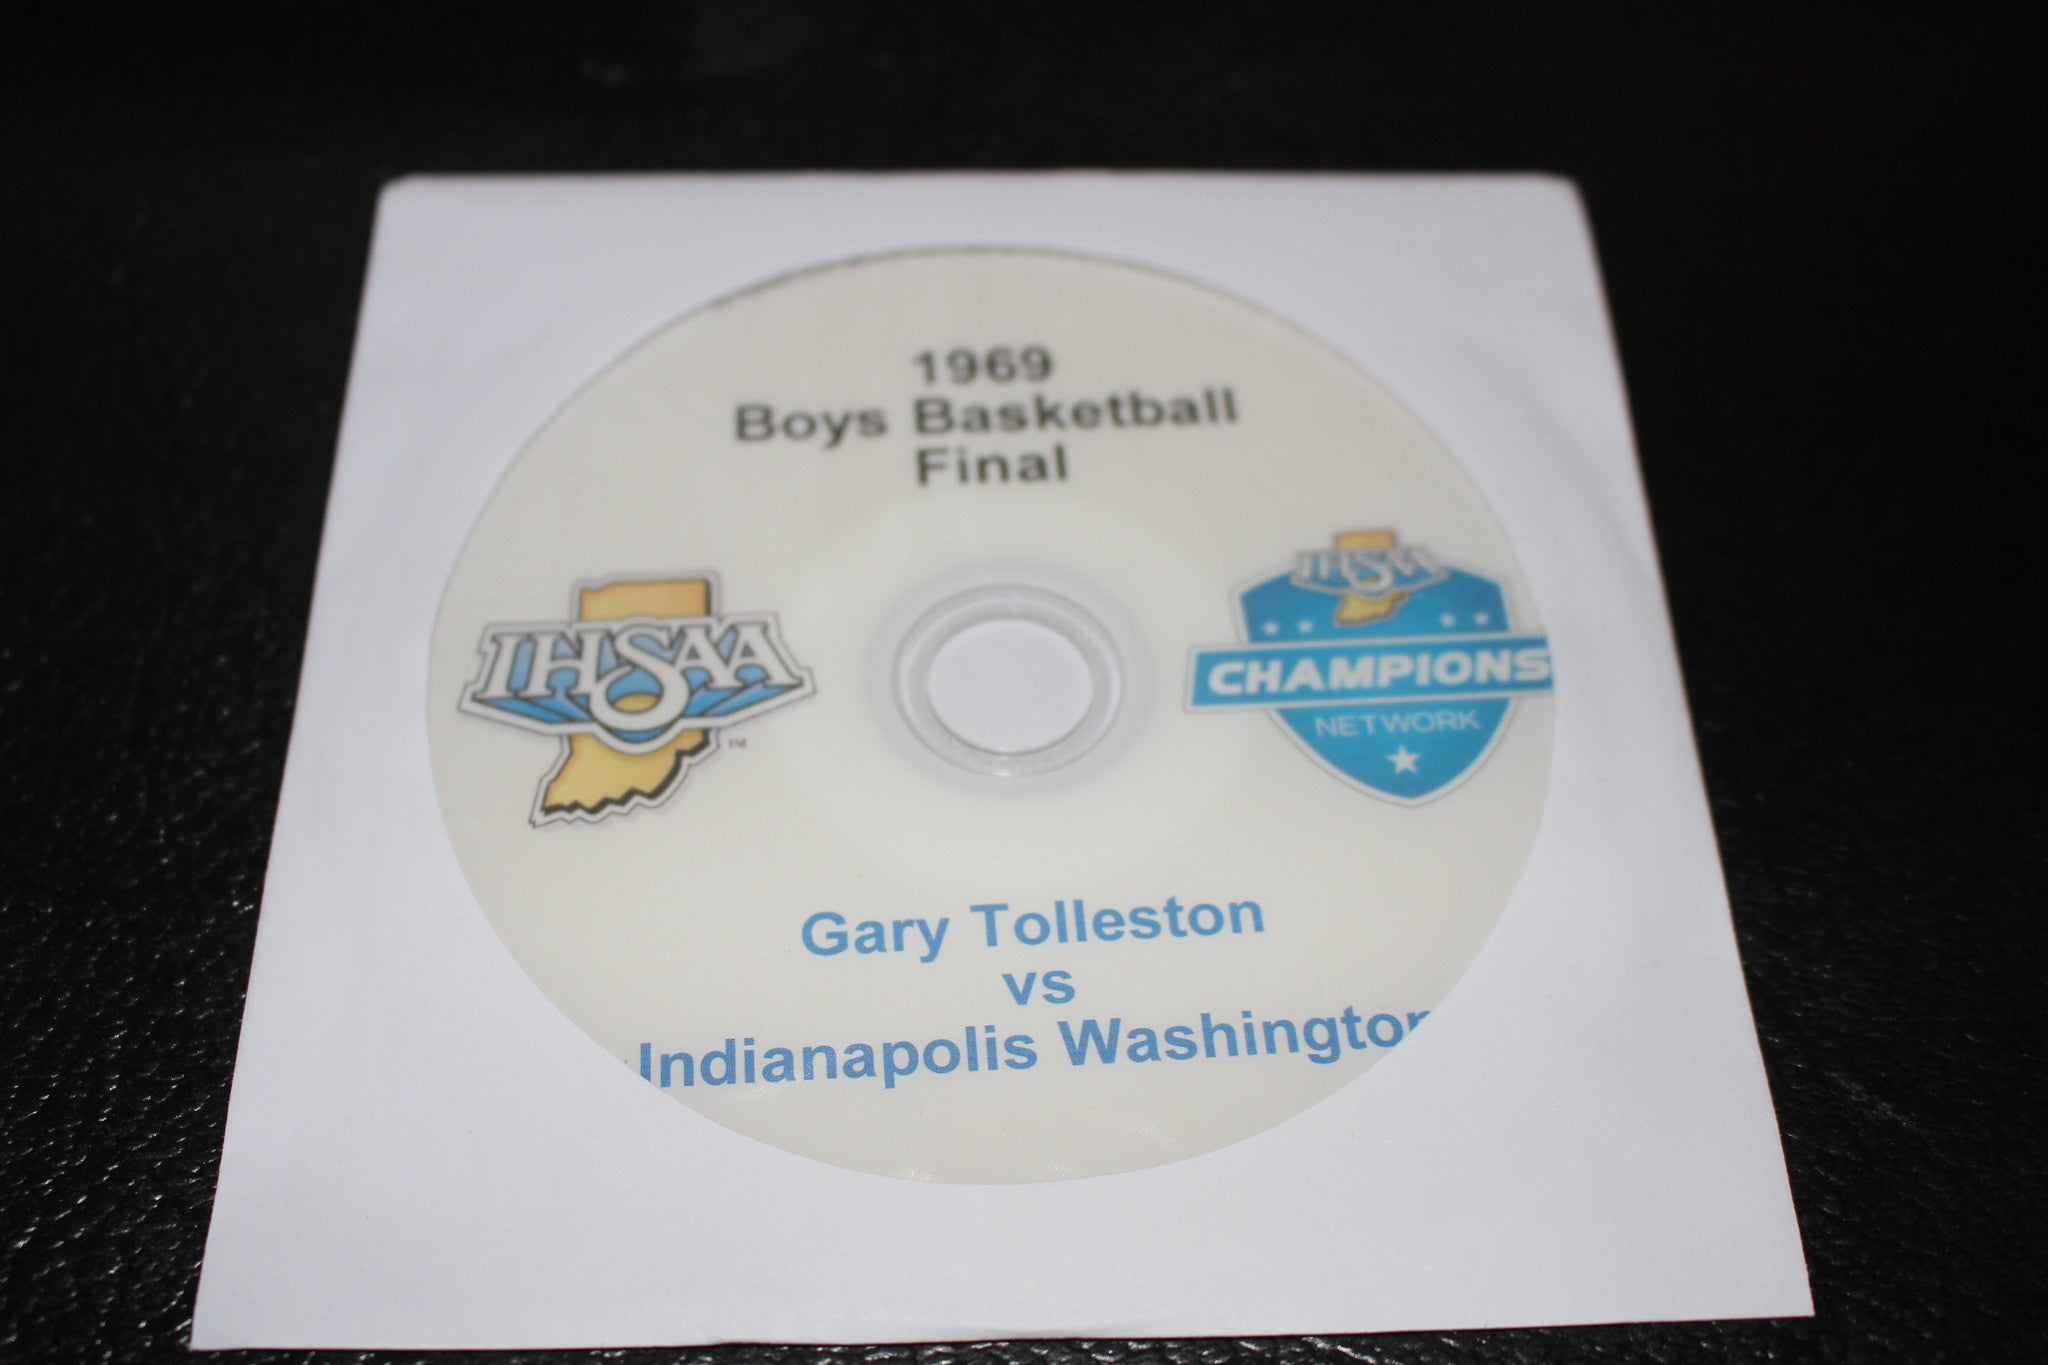 1969 Indiana High School Basketball State Championship DVD - Vintage Indy Sports